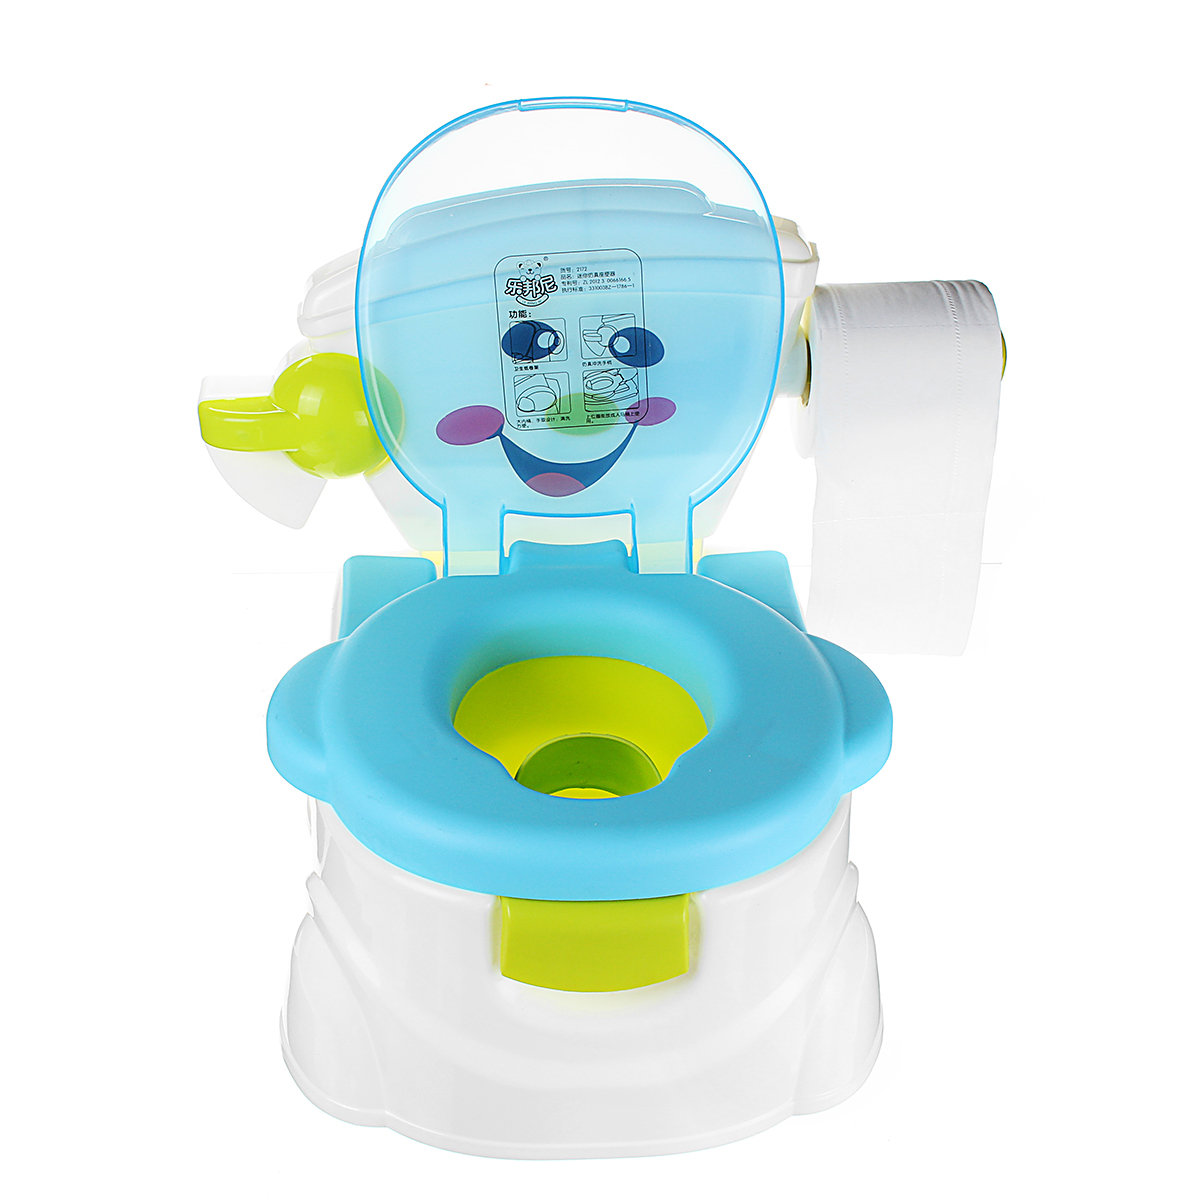 potty chair large child ergonomic lower back support 2 in1 portable music kids baby toilet trainer